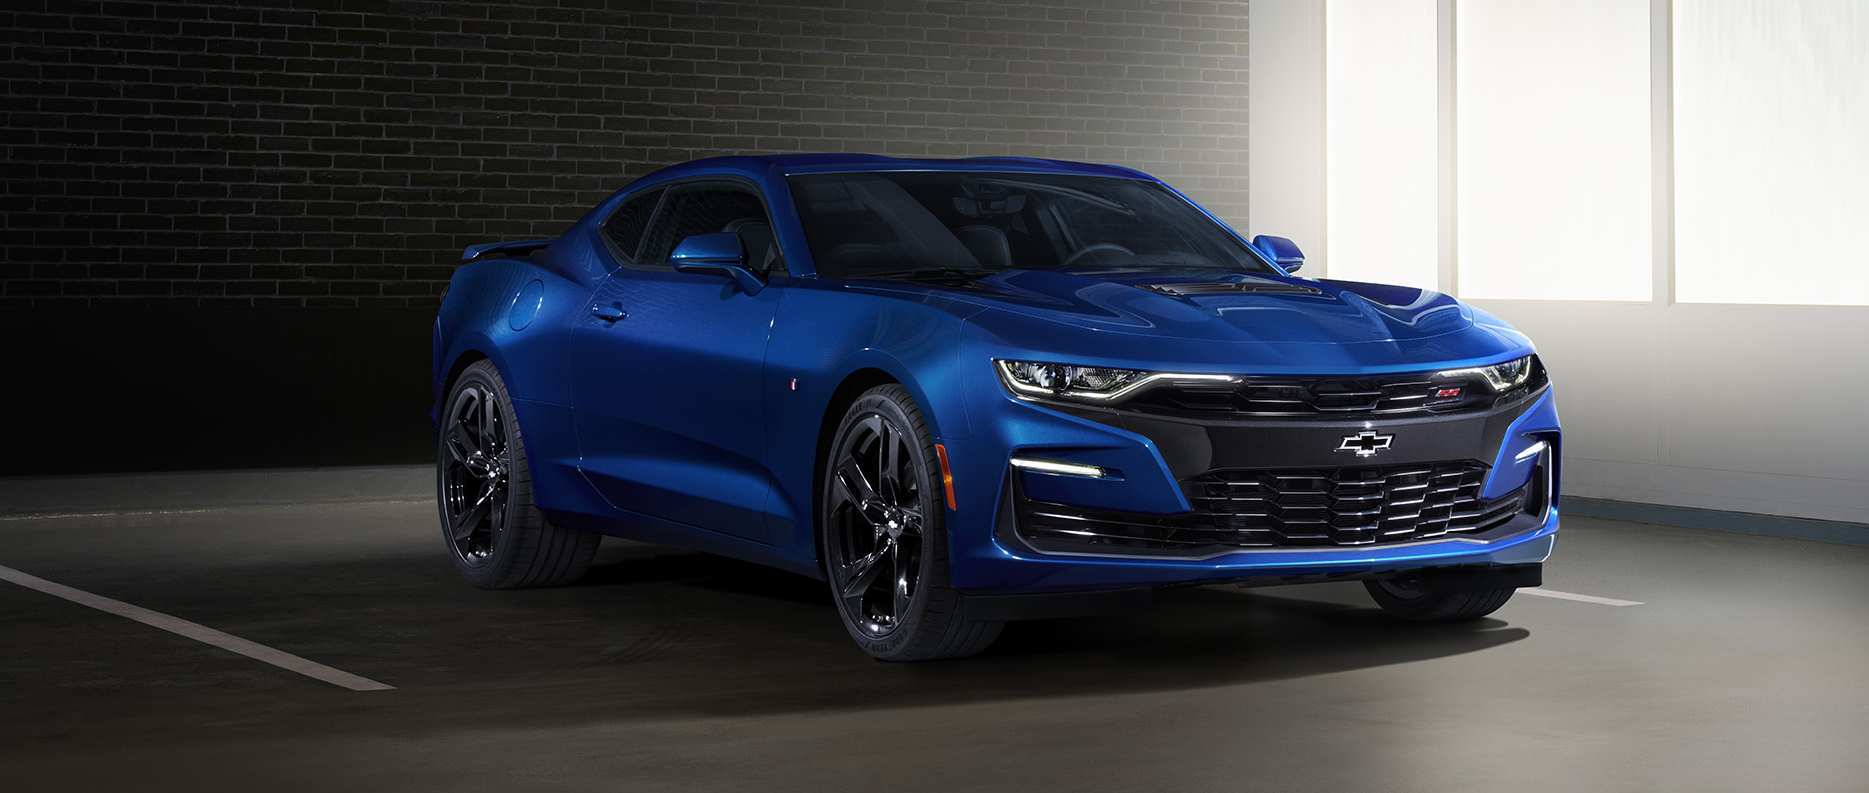 34 The Best 2019 Chevelle Price Design And Review